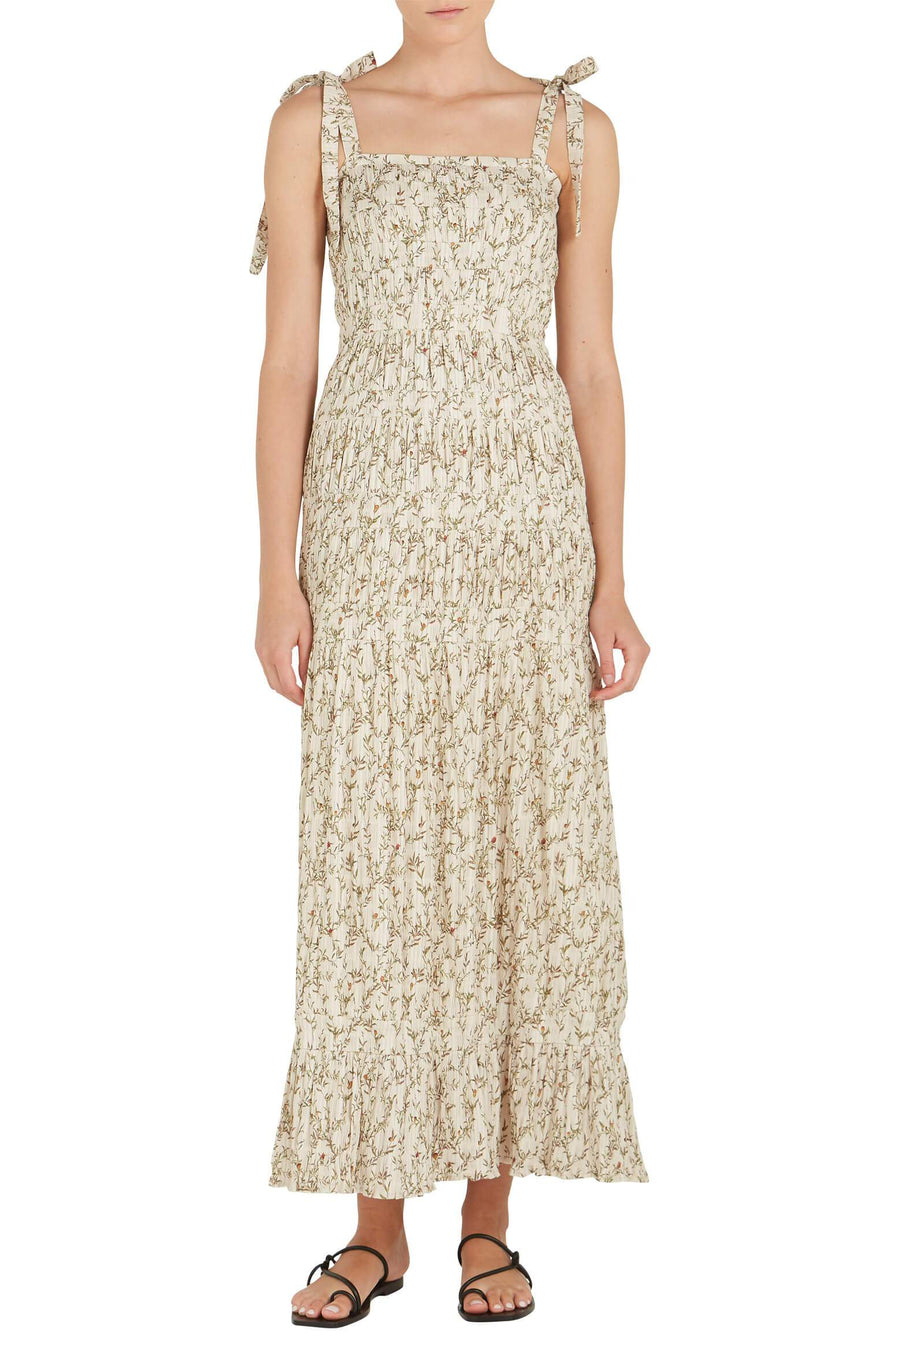 Sir the Label Alba Maxi Dress in Alba Leaf Print from The New Trend